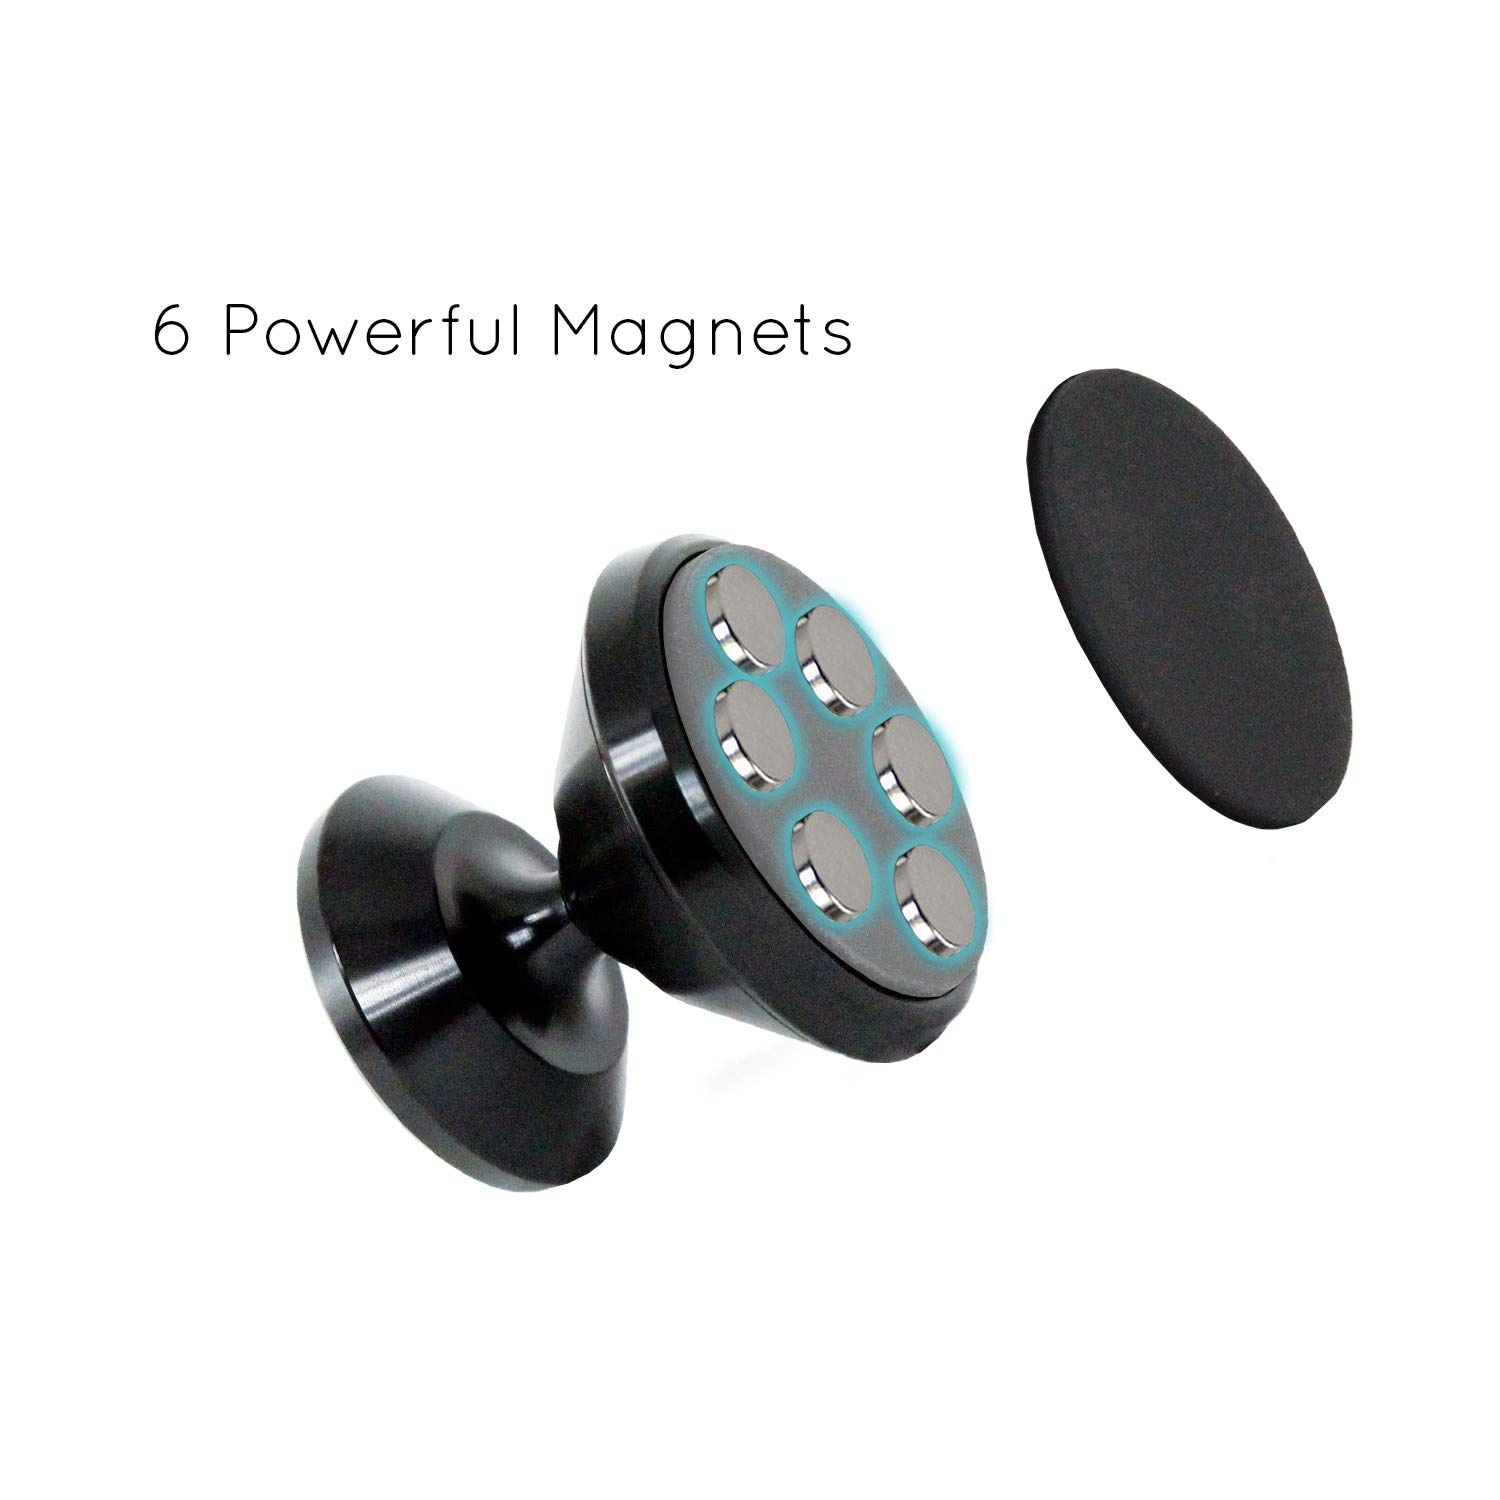 Magnetic Phone Mount for Flat Surfaces Extra Strong Support